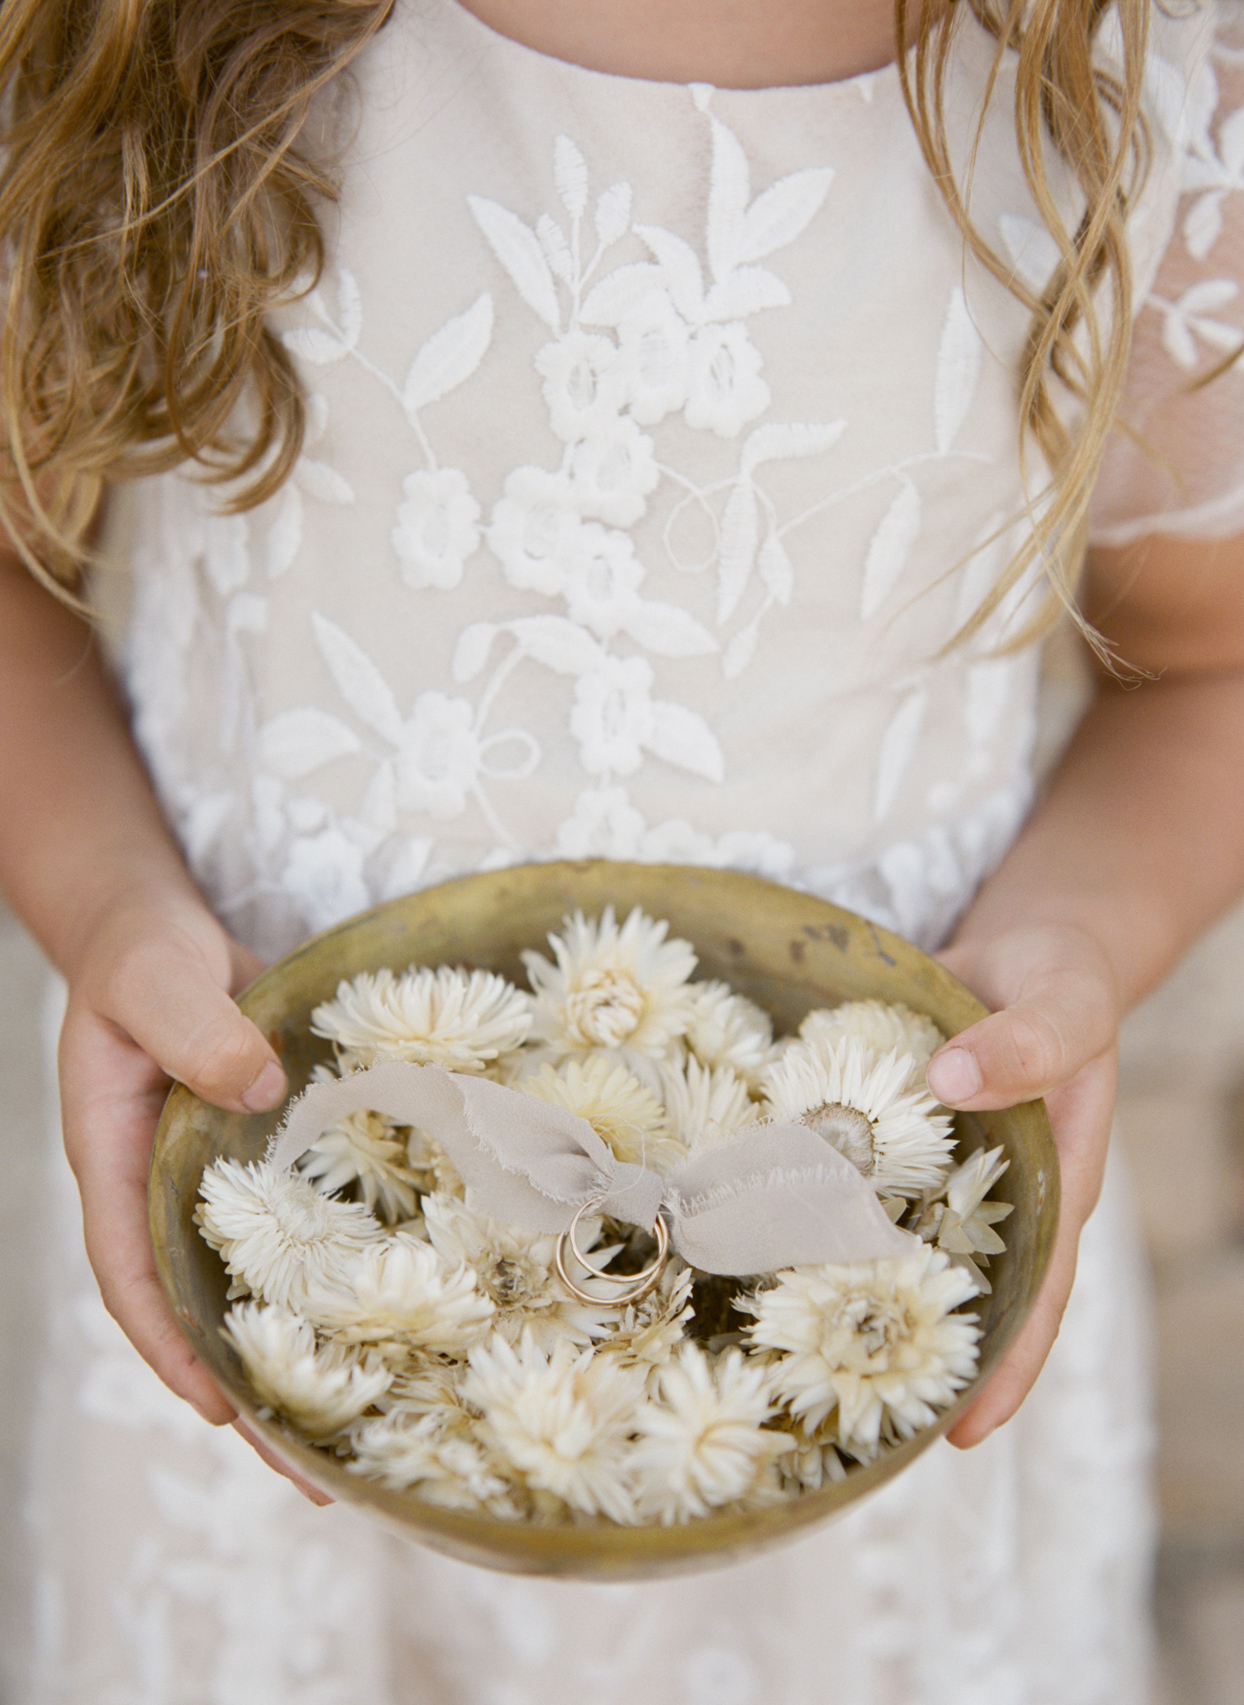 Flower girl holding bowl with wedding bands